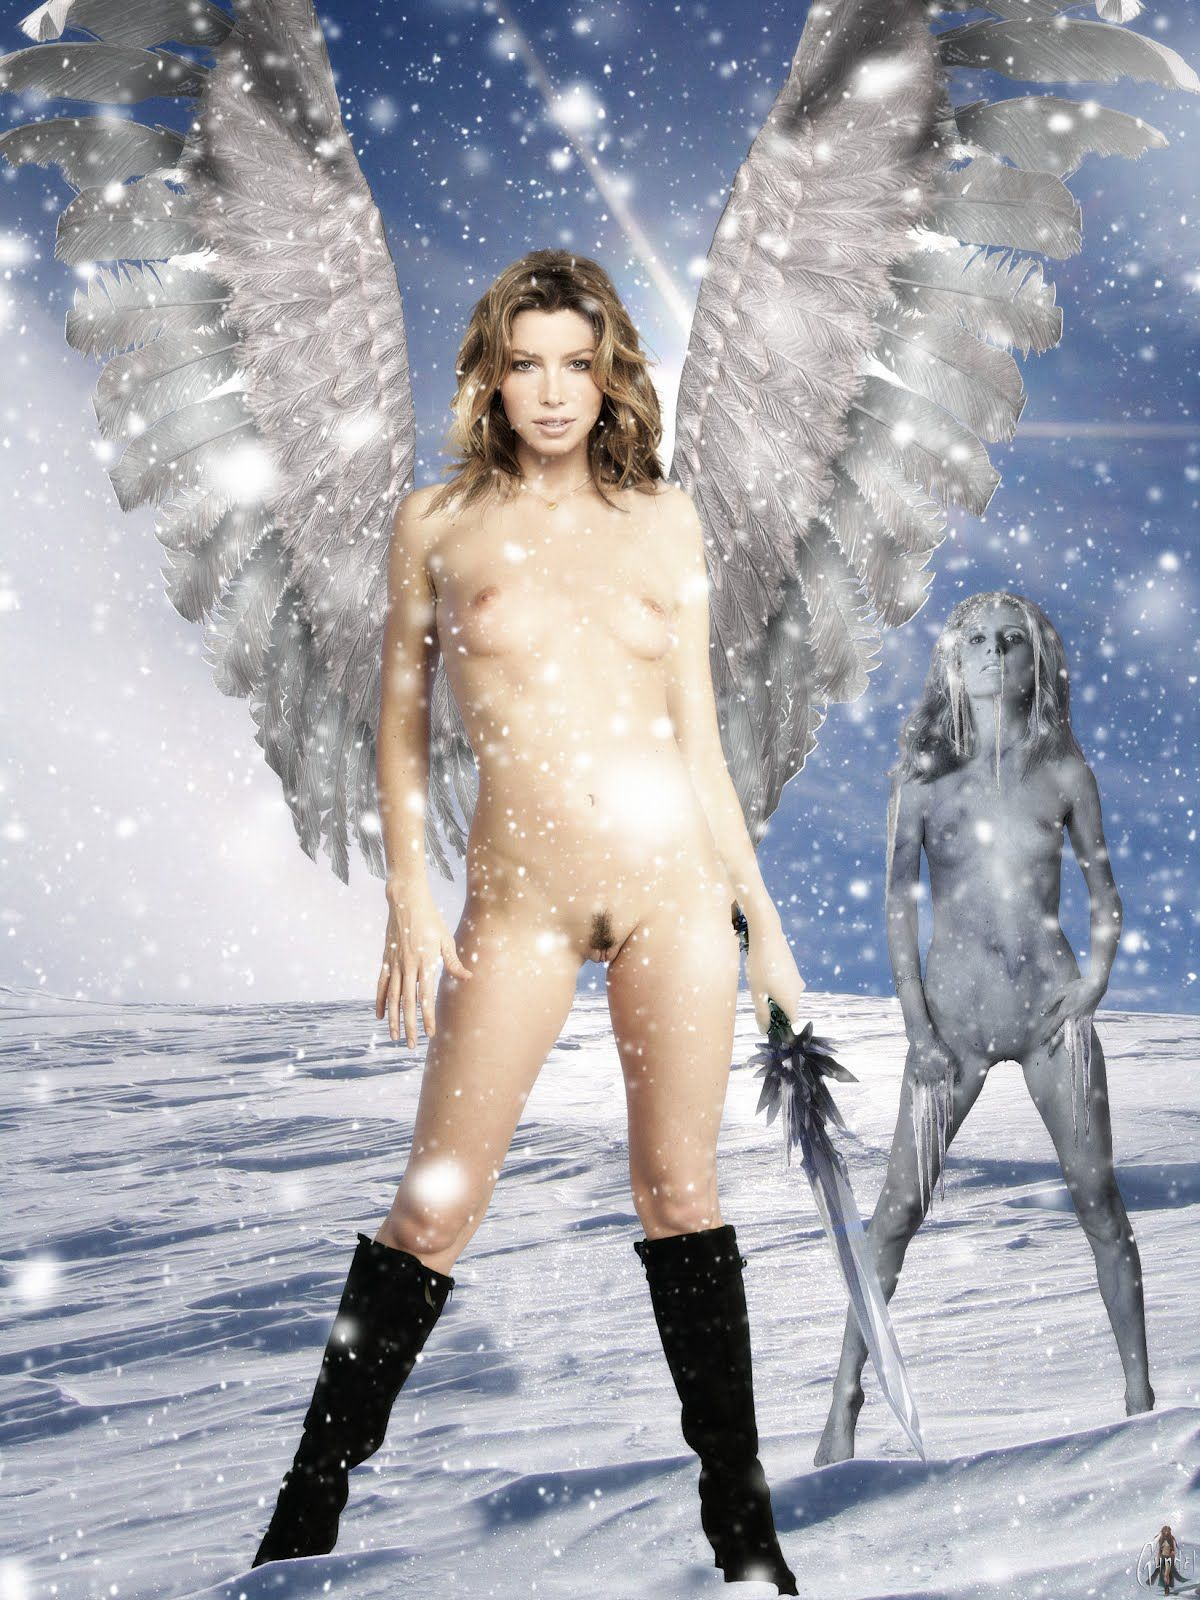 Nude angels and demons female — photo 11